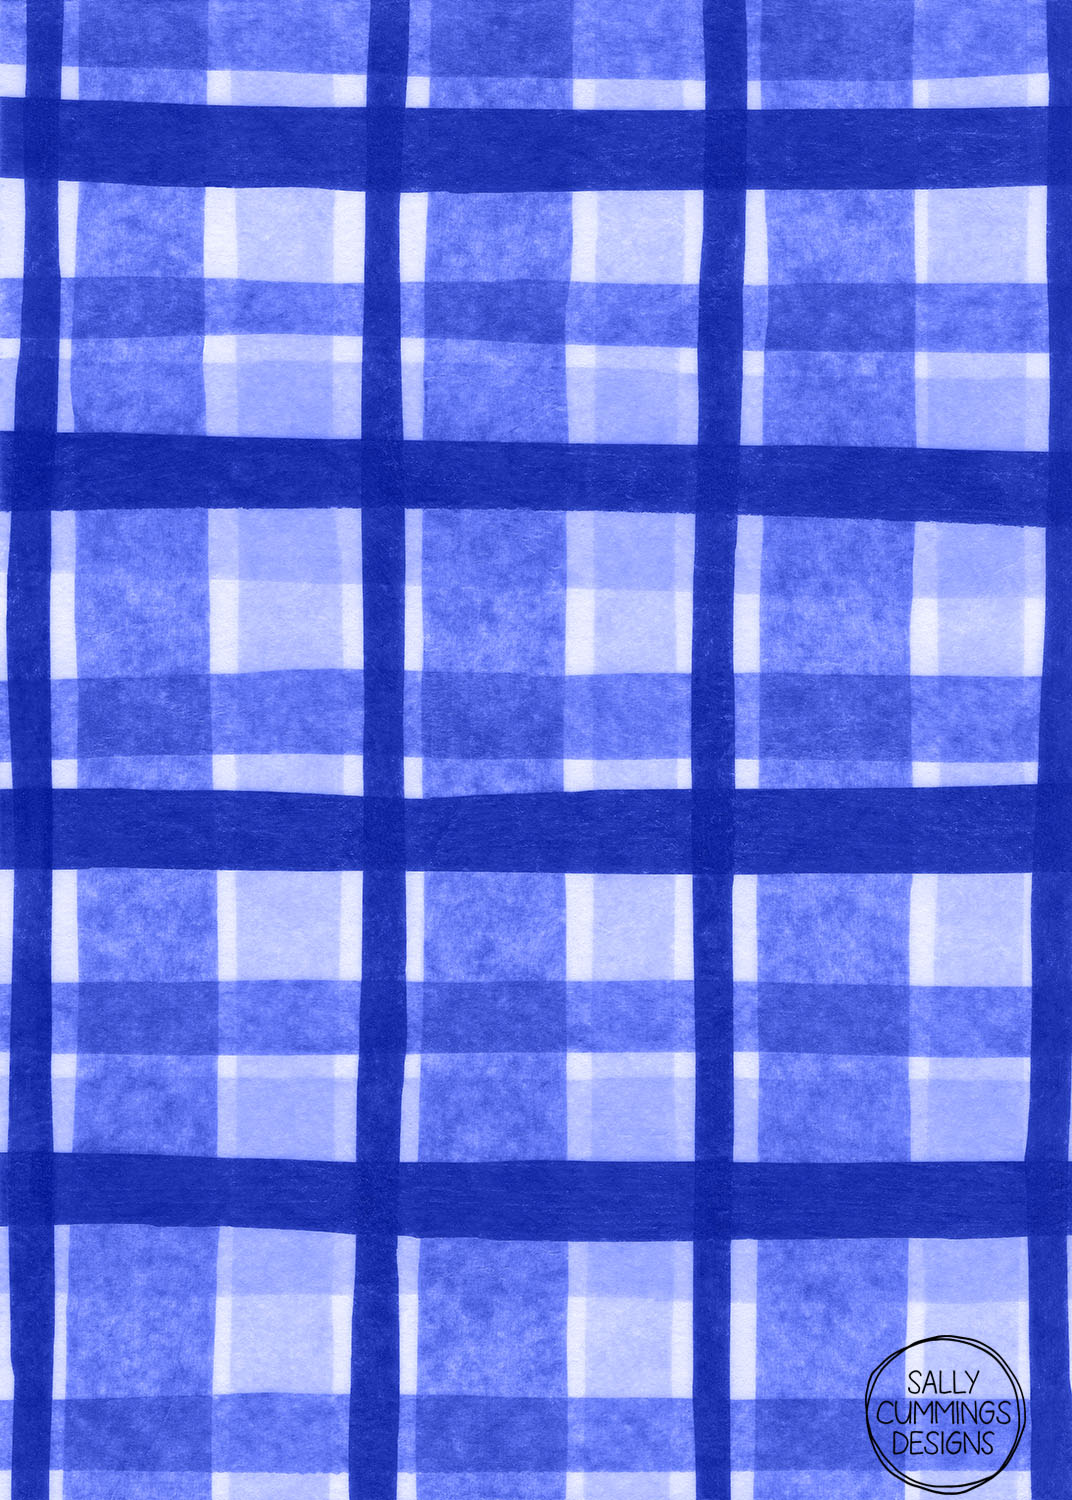 Sally Cummings Designs - Tissue Paper Plaid (Blue)